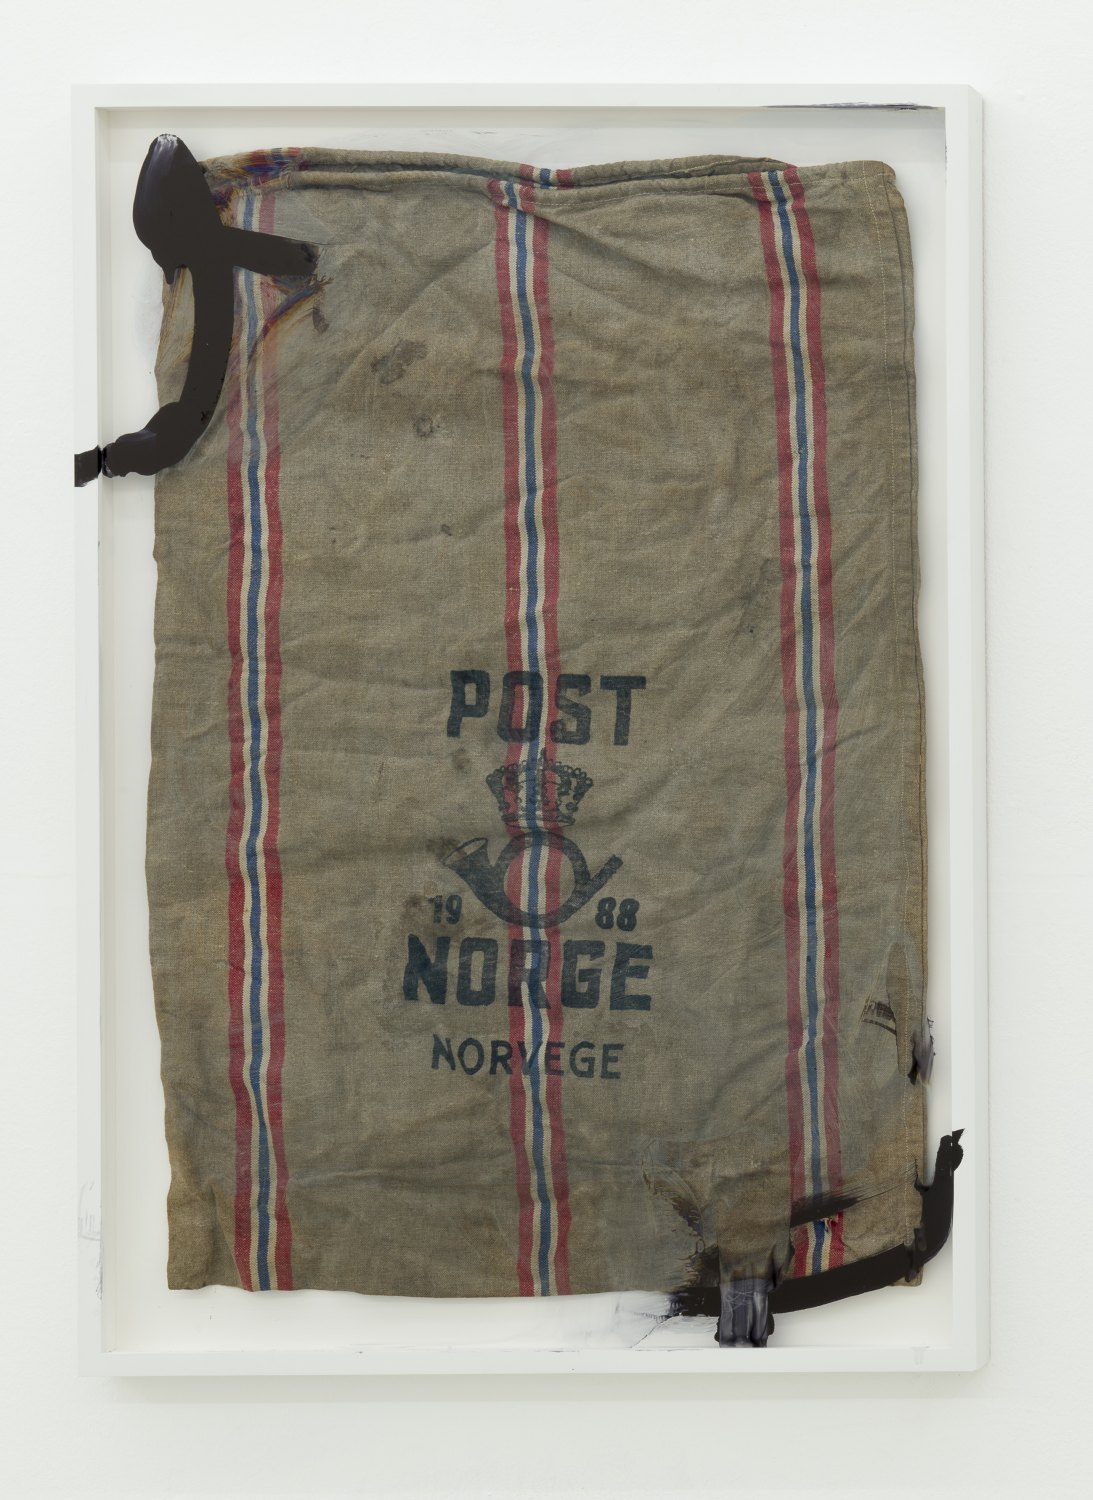 Matias Faldbakken Untitled (post bag), 2013 Canvas, frame, paint, 109.8 × 75.8 cm